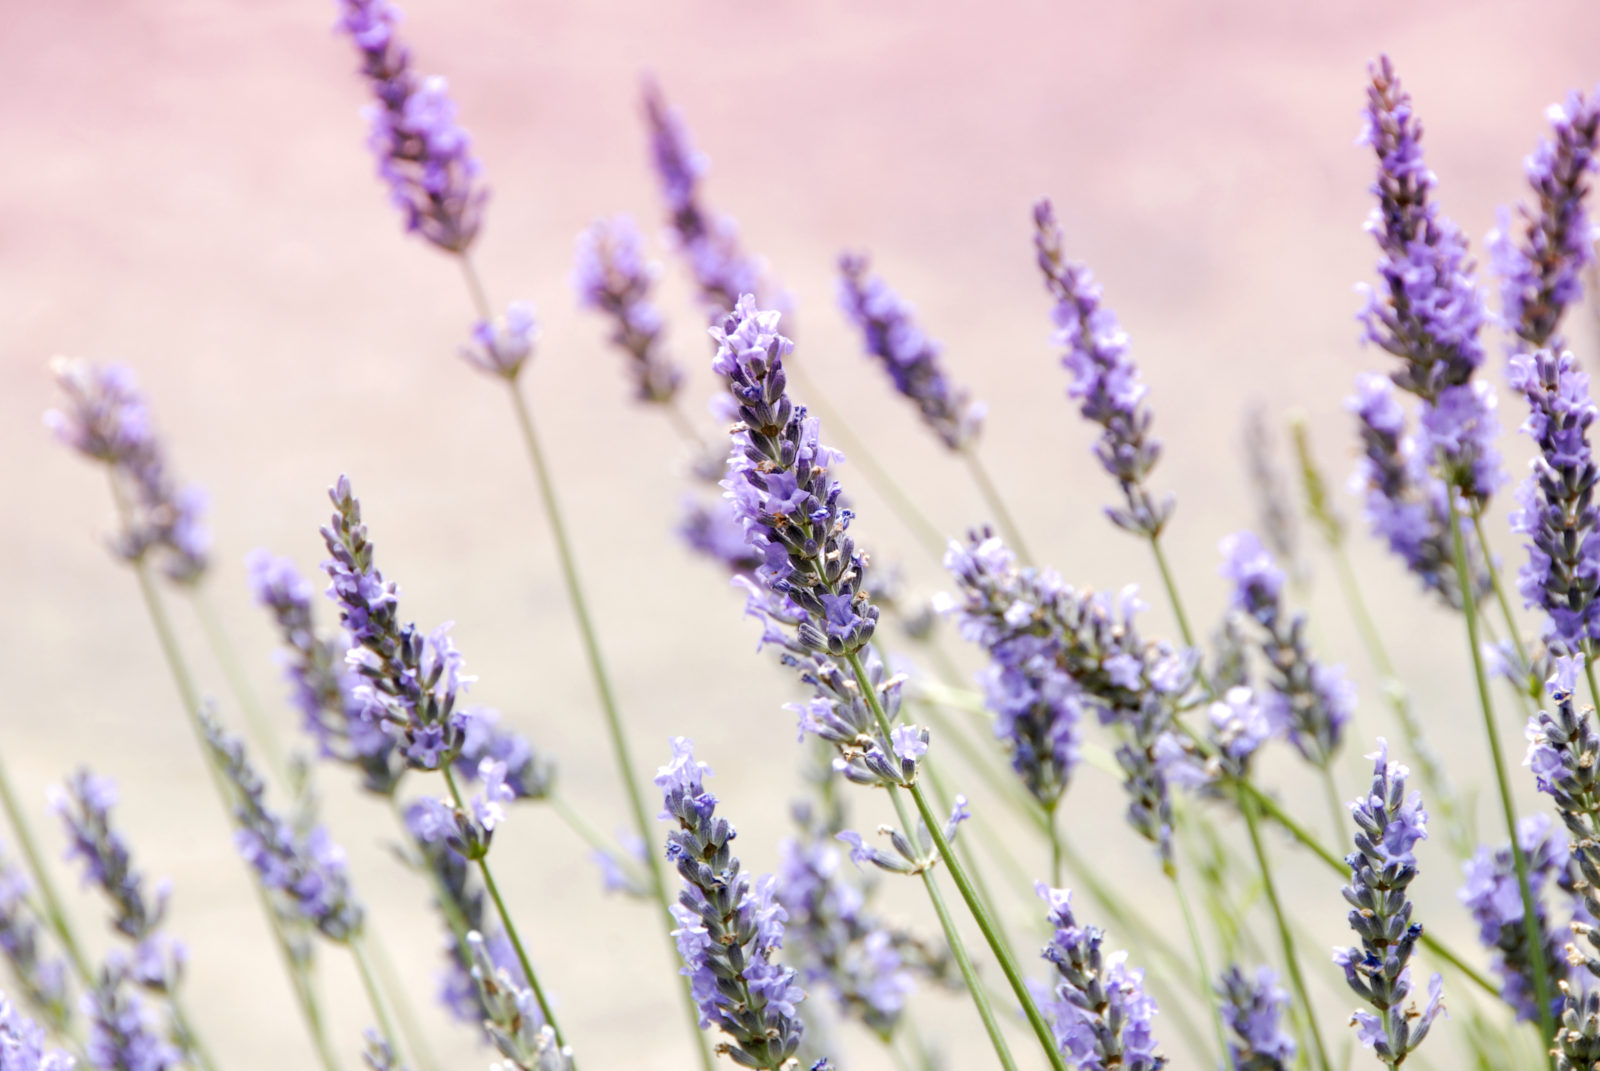 Lavender and Linalool